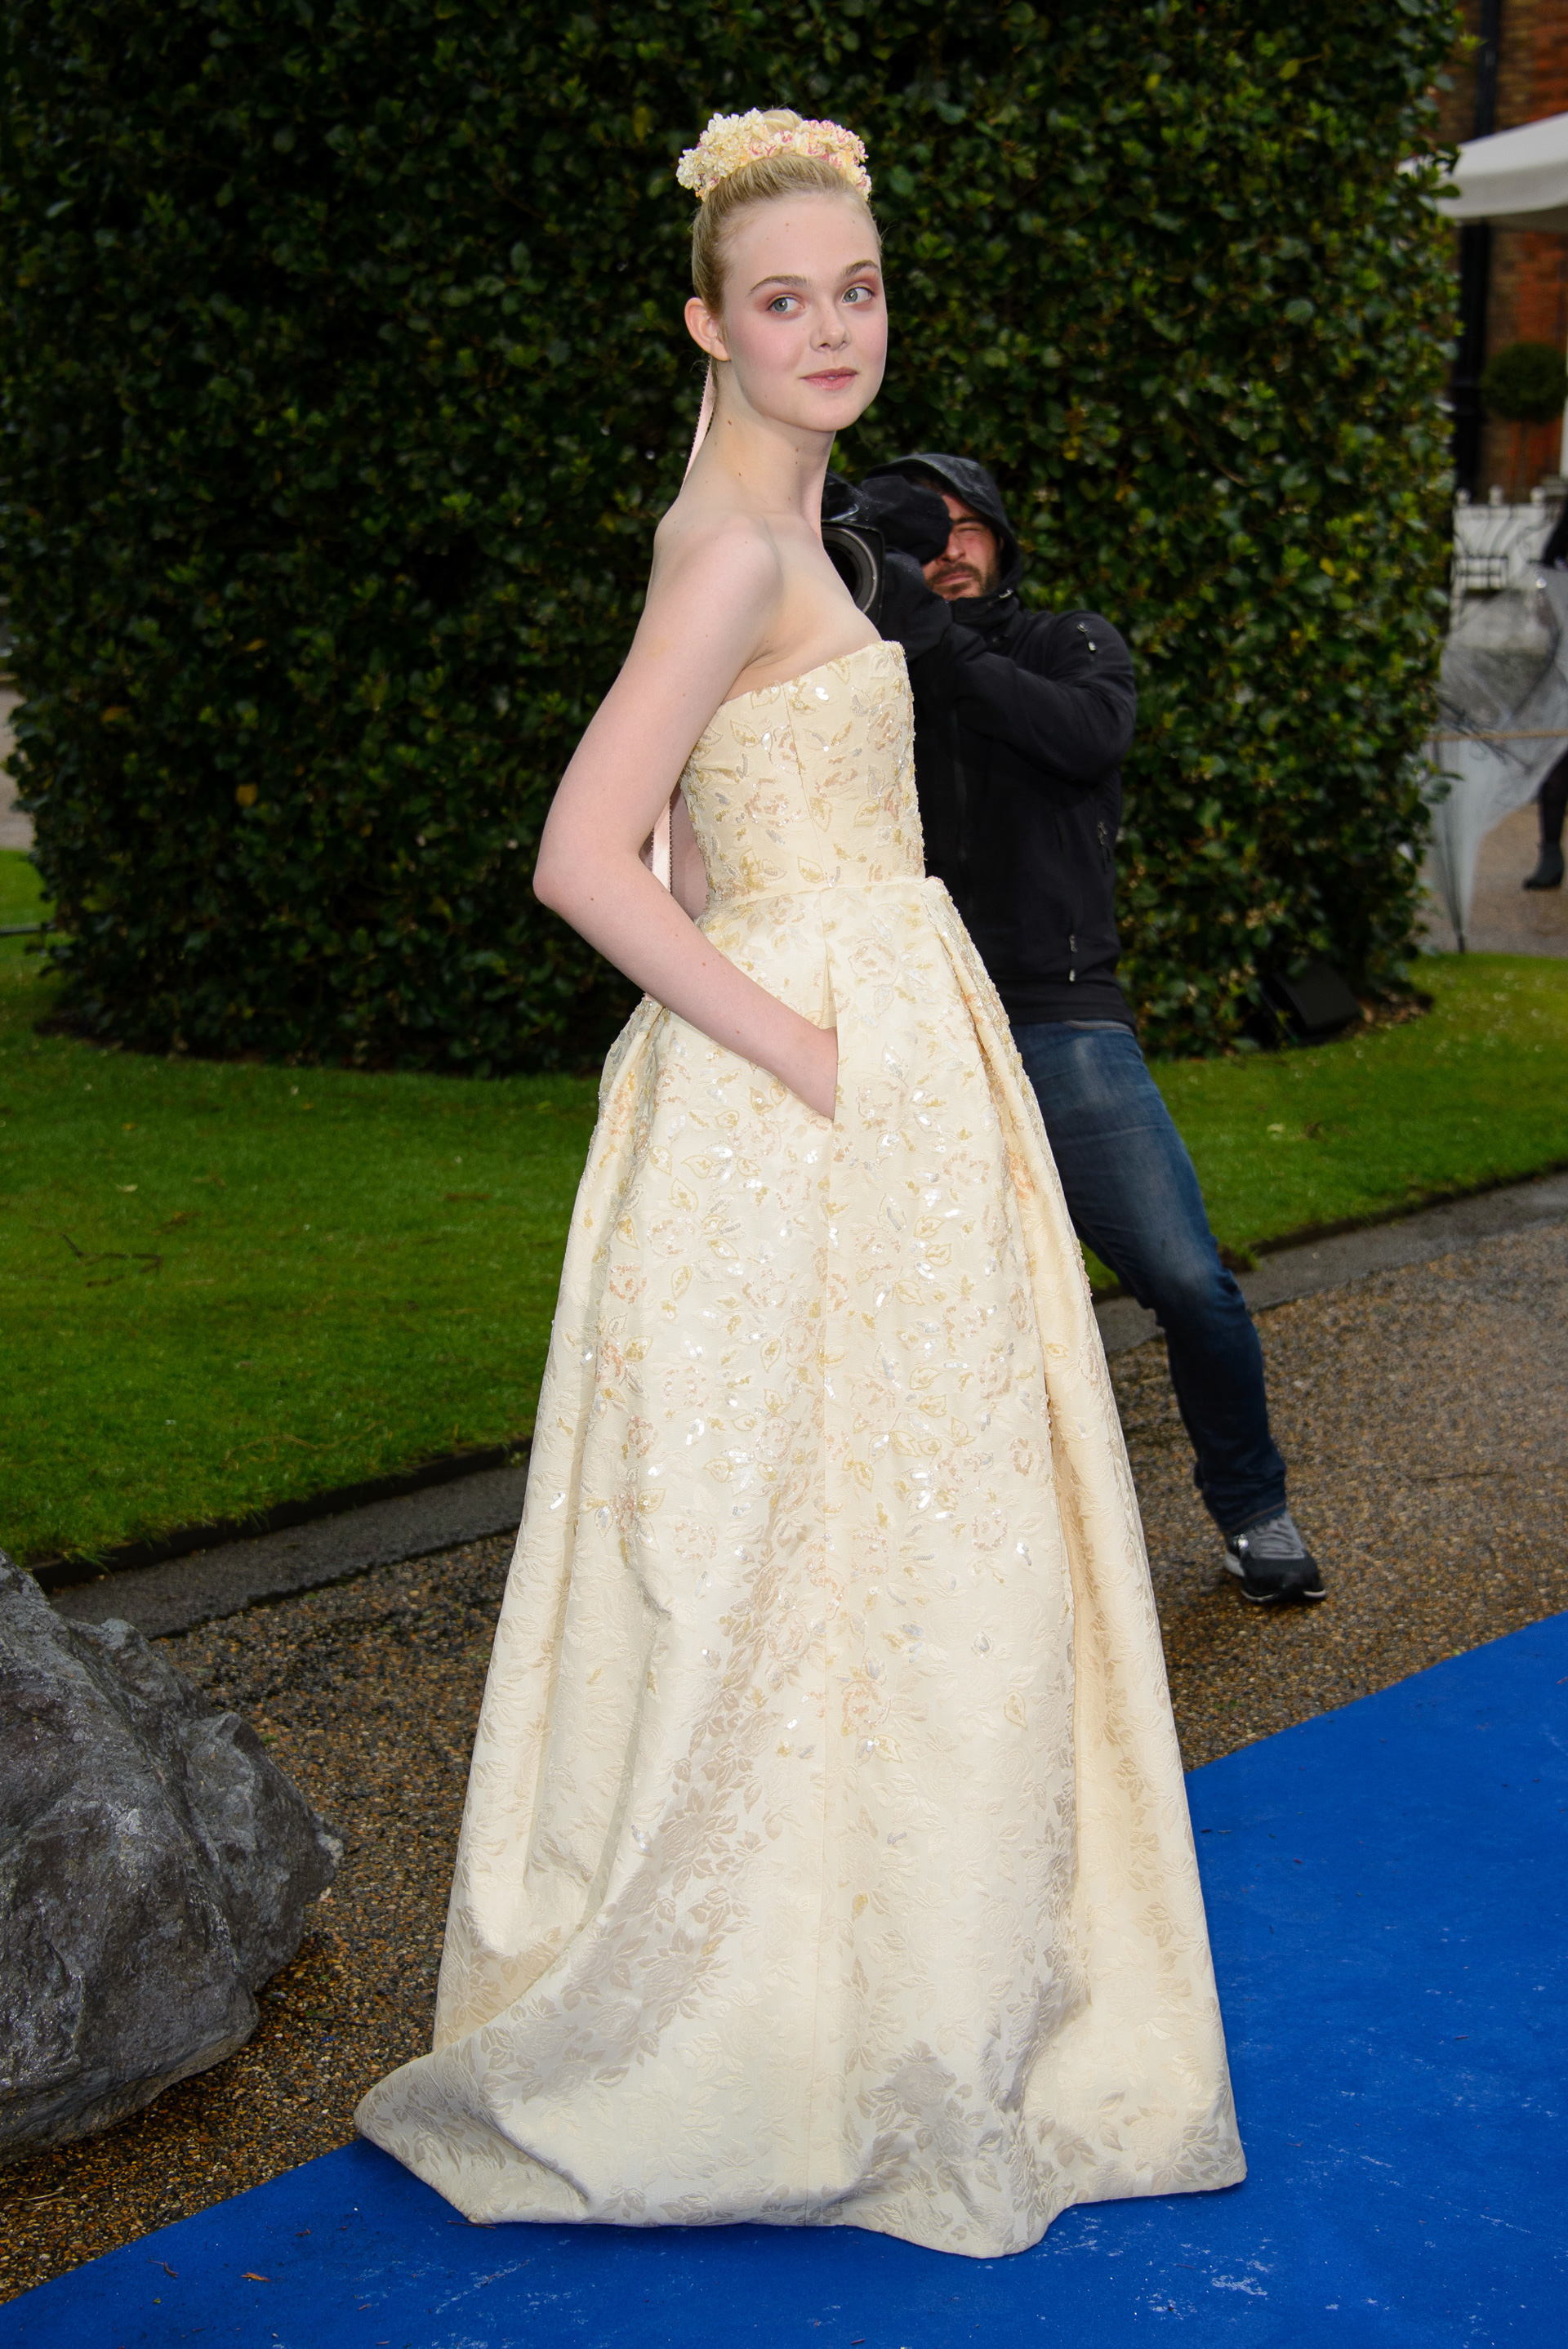 Elle Fanning wearing embroidered strapless gown at a Maleficent promo event